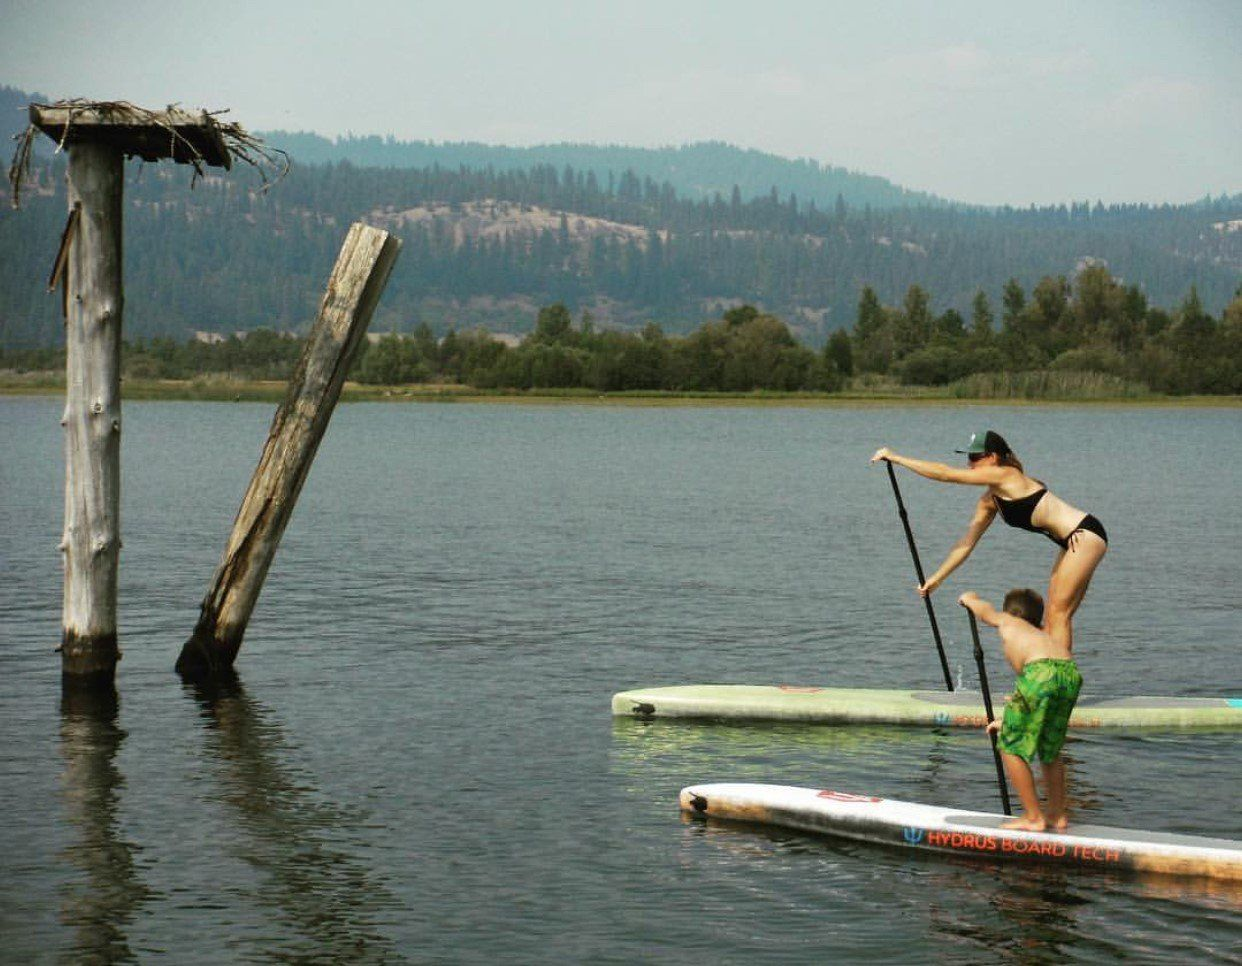 "Elysium Expedition and Swift Water Paddleboard 12'6""x27 / 12'6""x29"" / 14'x25"" / 14'x27"" SUP Hydrus"